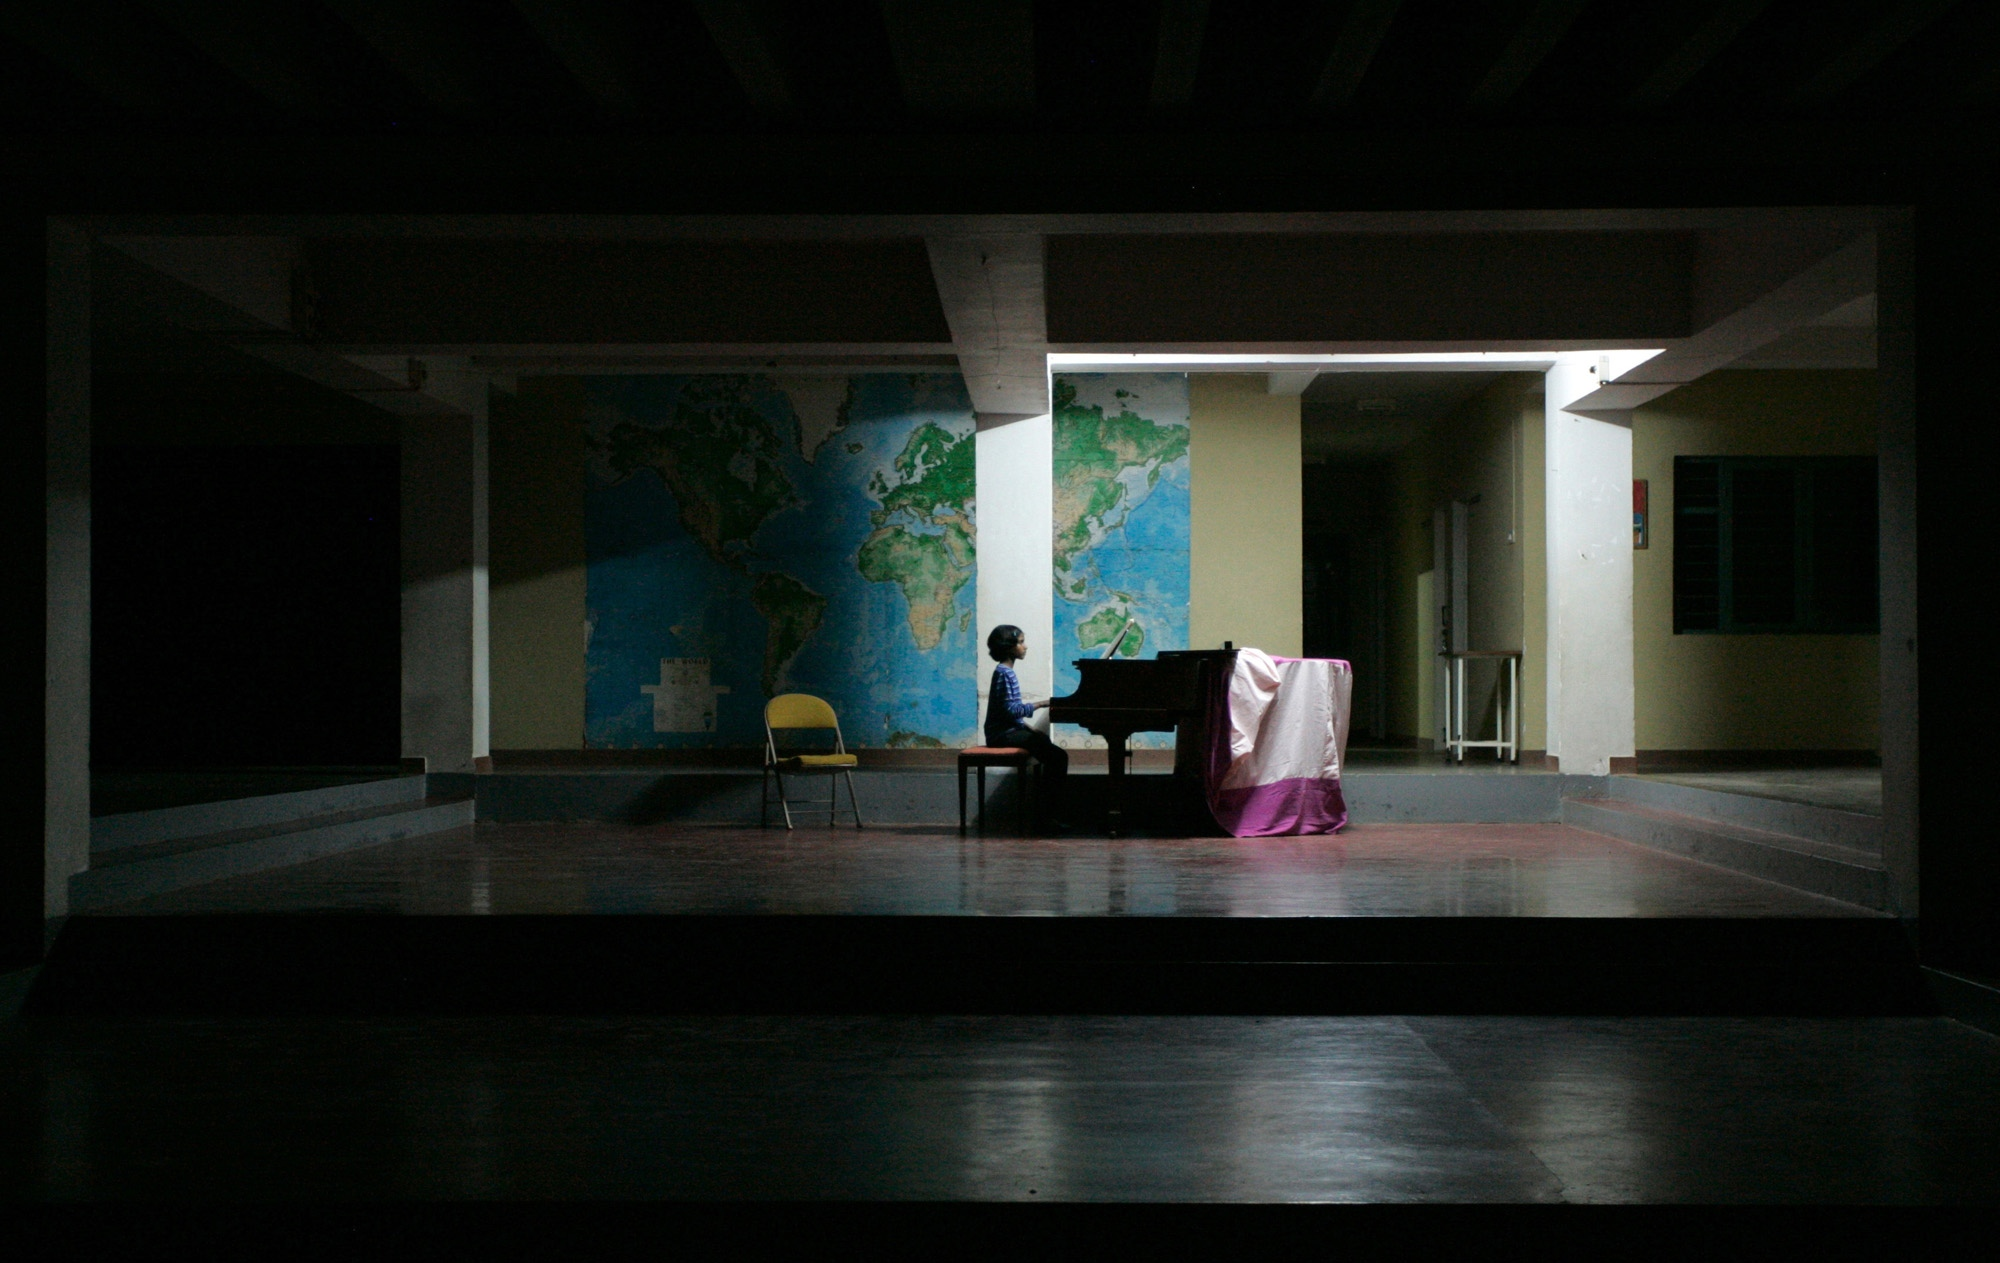 Manjula, 12, practices piano in the main school building.